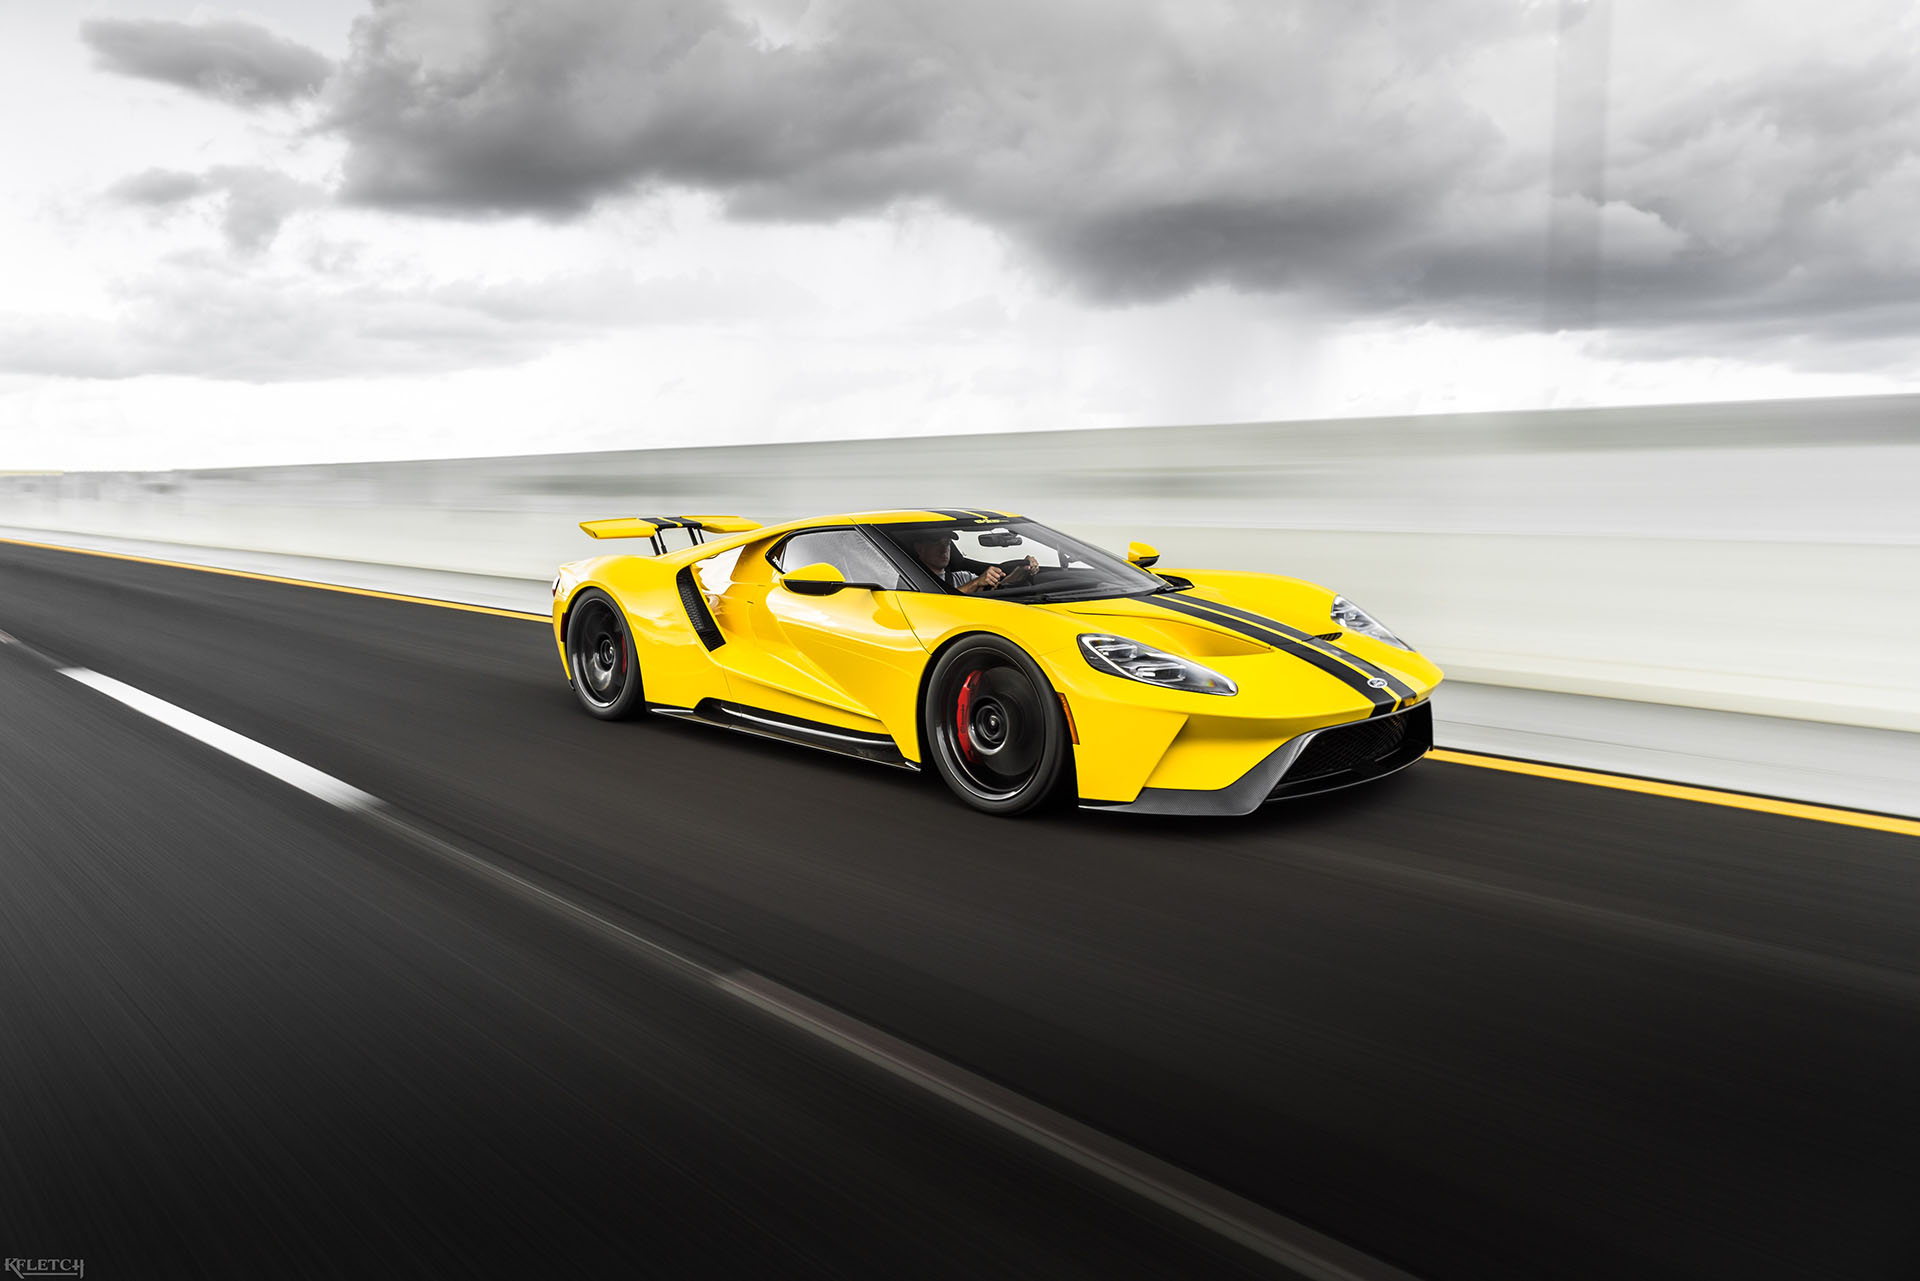 Ford Gt Coming Soon Congratulations Email Received From Ford On Allocation Results